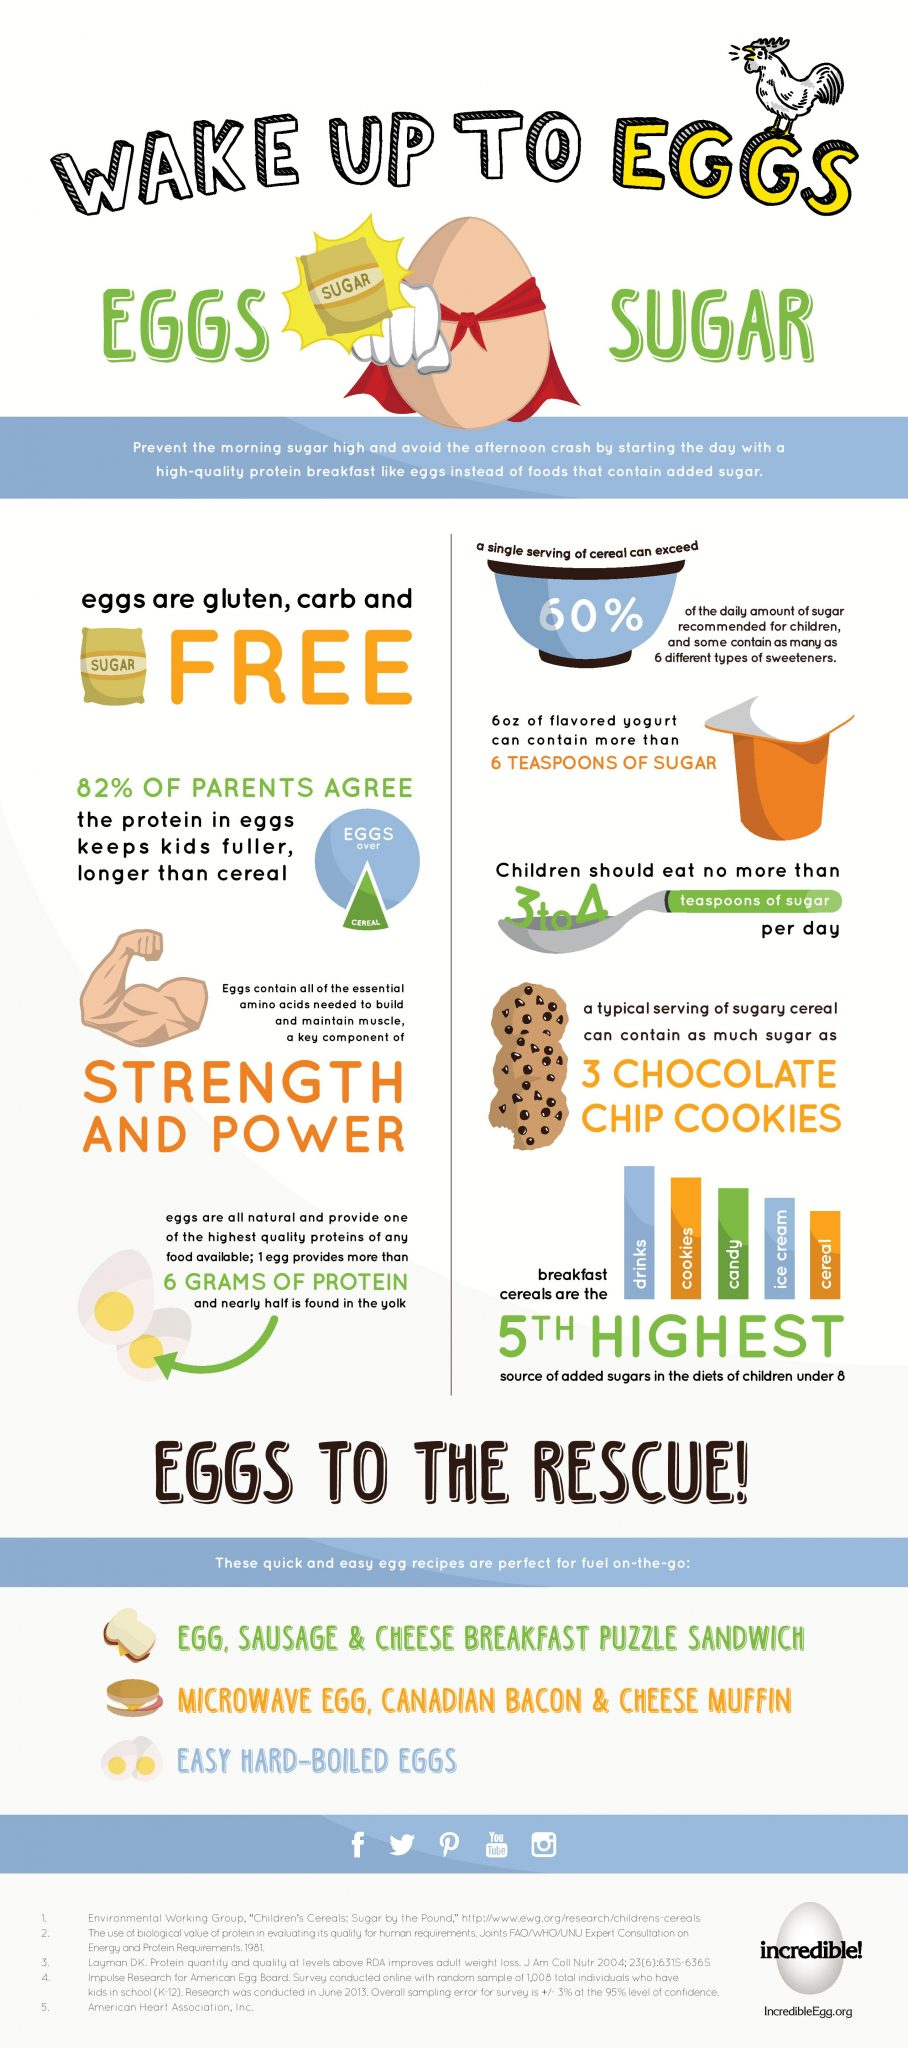 Incredible Eggs Infographic Nutrient-rich, all-natural eggs are a welcome addition to any diet